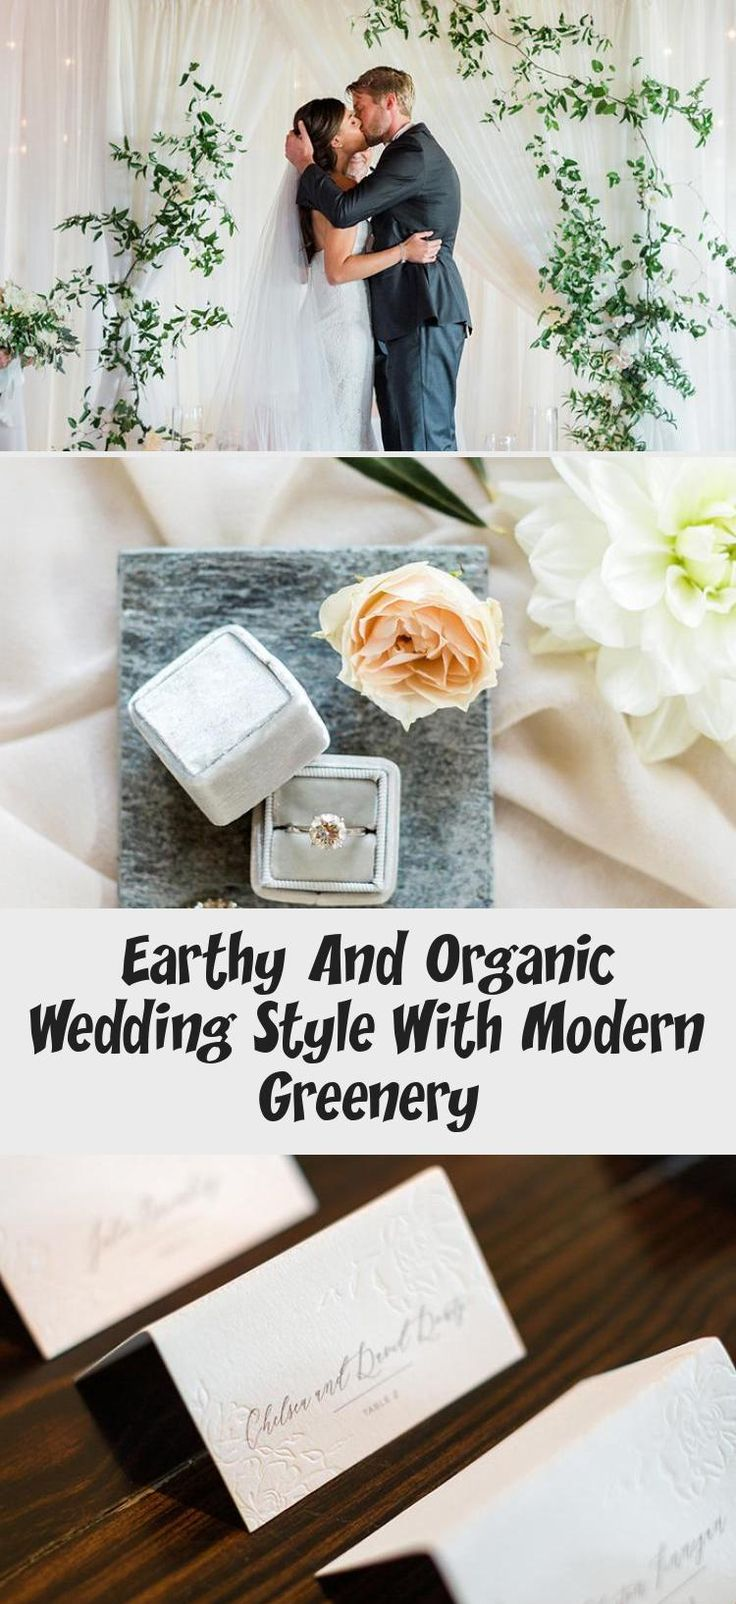 Rustic Draped Wedding Ceremony Backdrop with Modern Greenery and Candles #gardenweddingNight #gardenweddingBlue #gardenweddingVenues #Bohemiangardenwedding #Fairytalegardenwedding